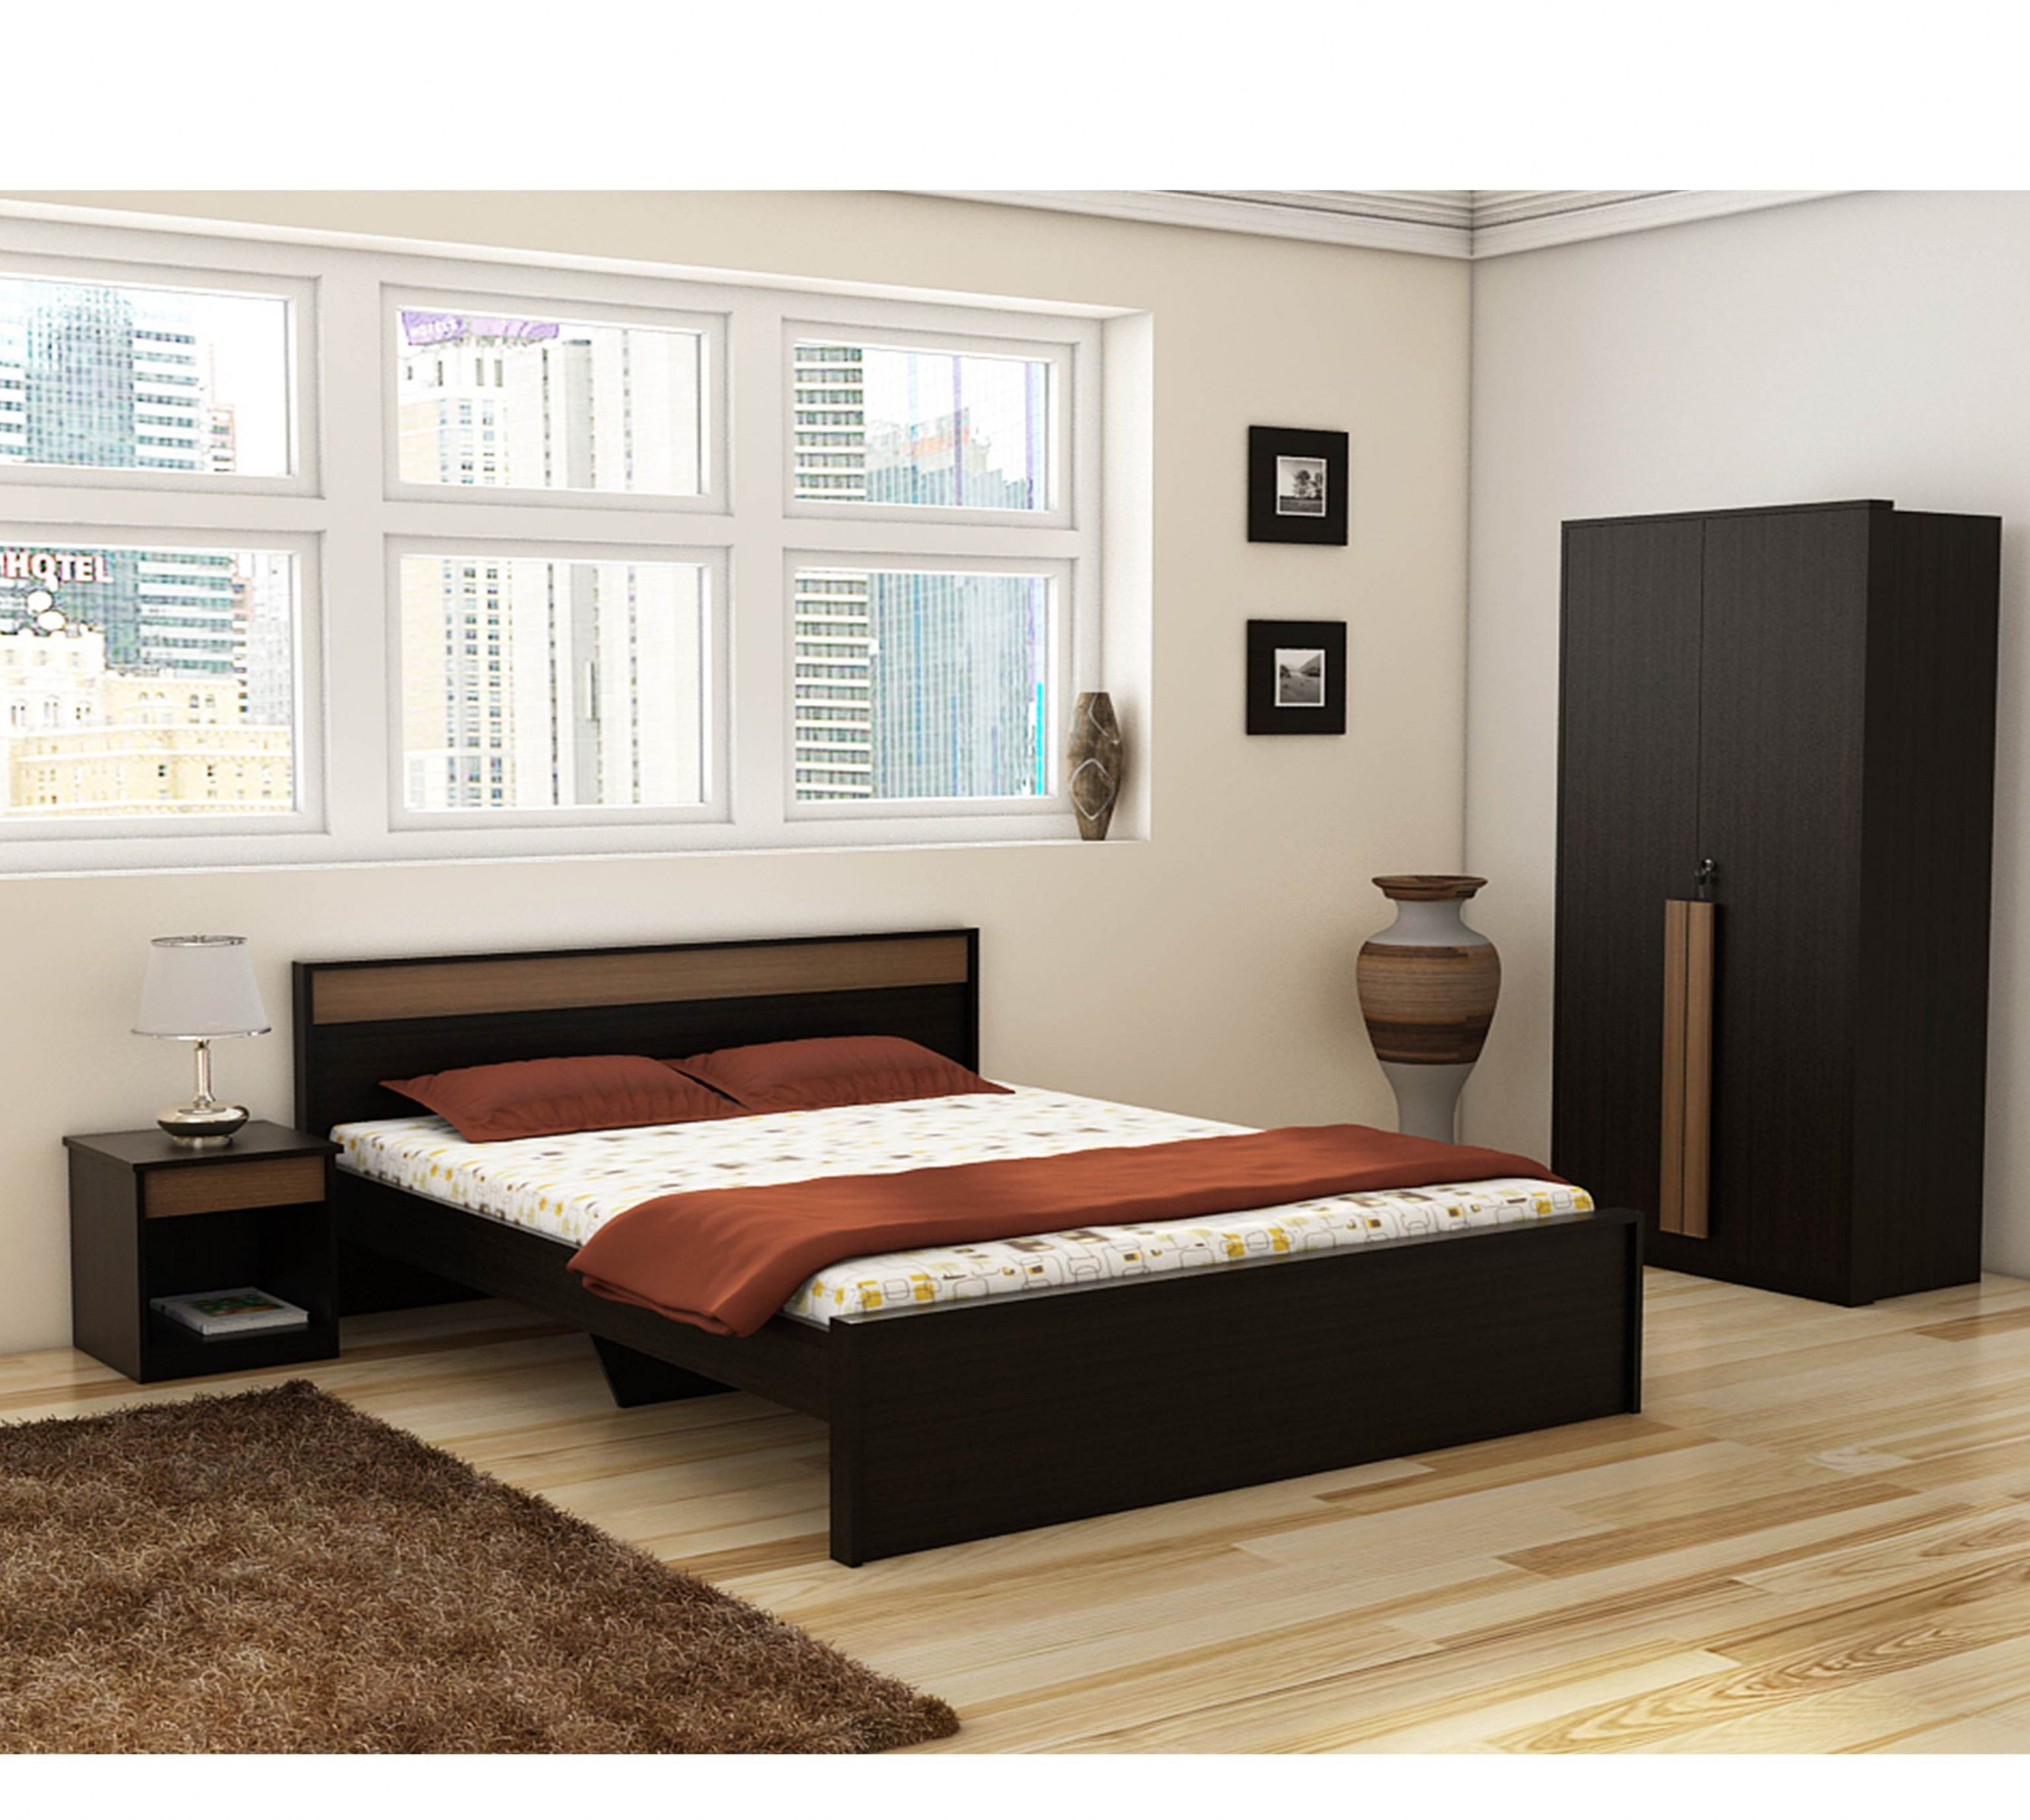 Full Size Bedroom Set Elegant Low Beds Ikea White Bedroom Furniture Sets Ikea White Hemnes